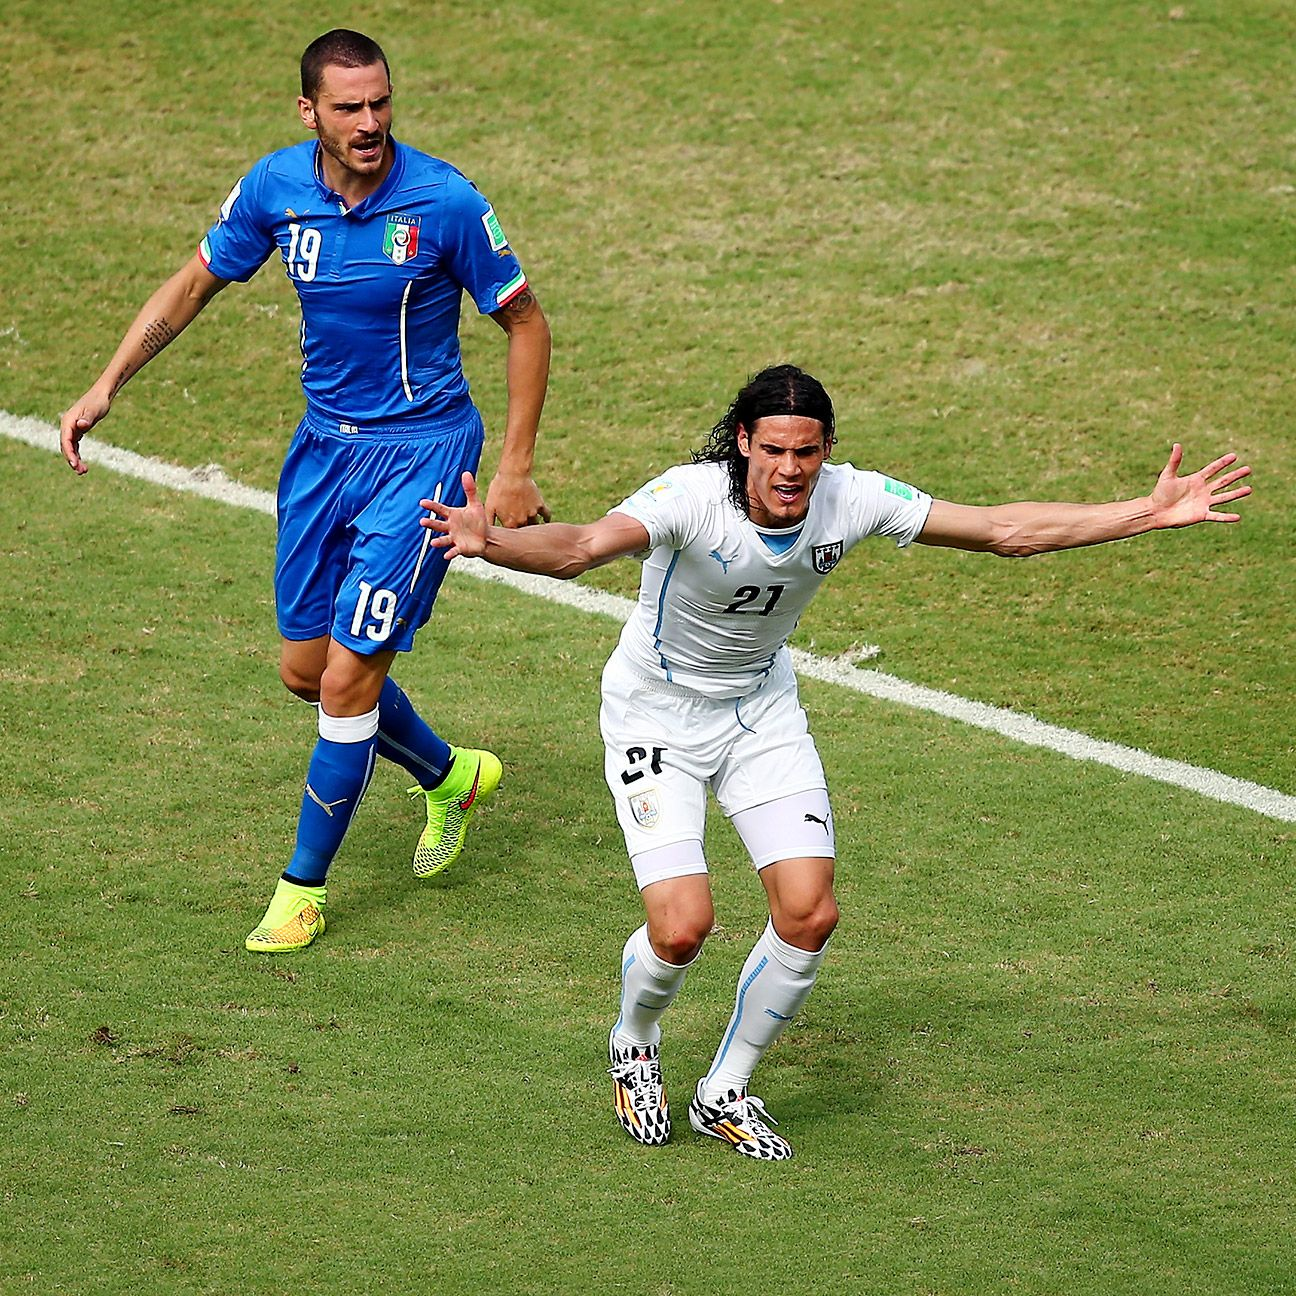 It's imperative that Edinson Cavani step up in Luis Suarez's absence.